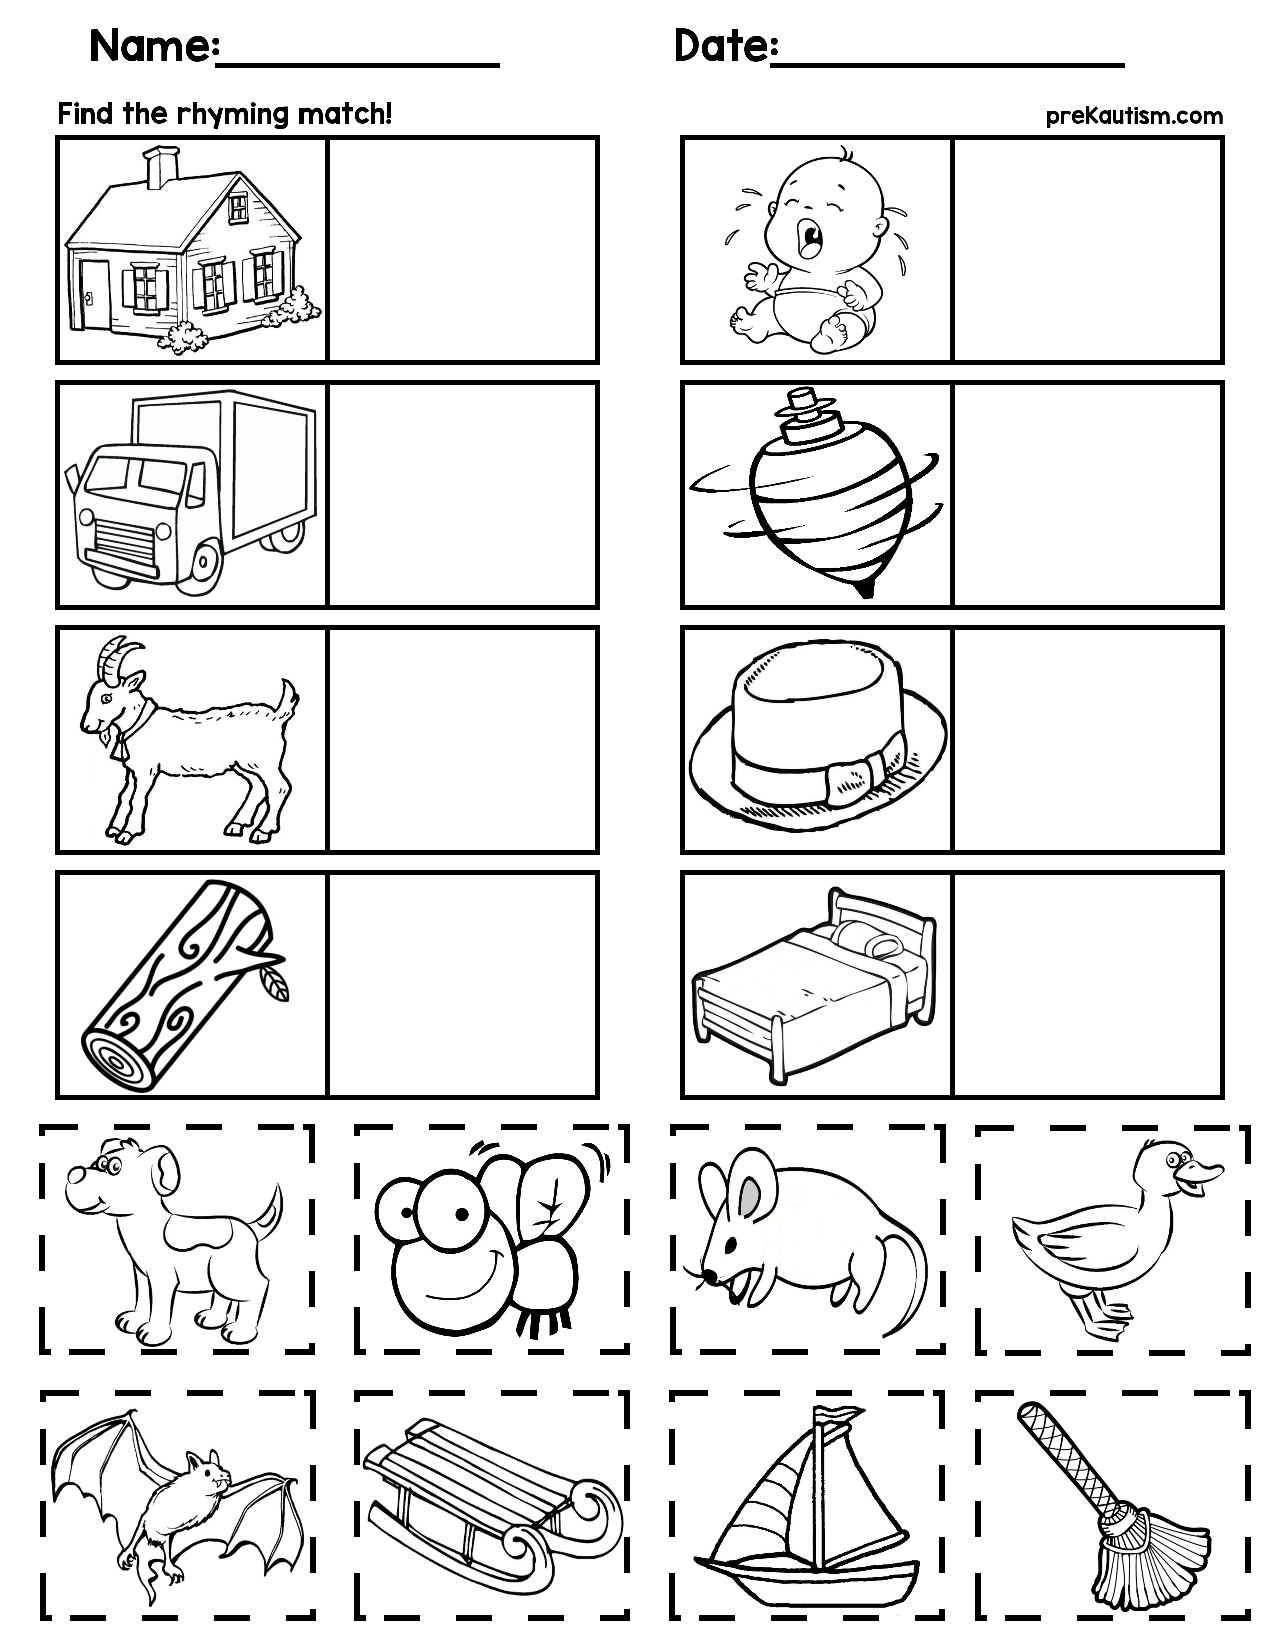 $1   Rhyming Worksheets For Preschoolers   5 Pages, No Prep